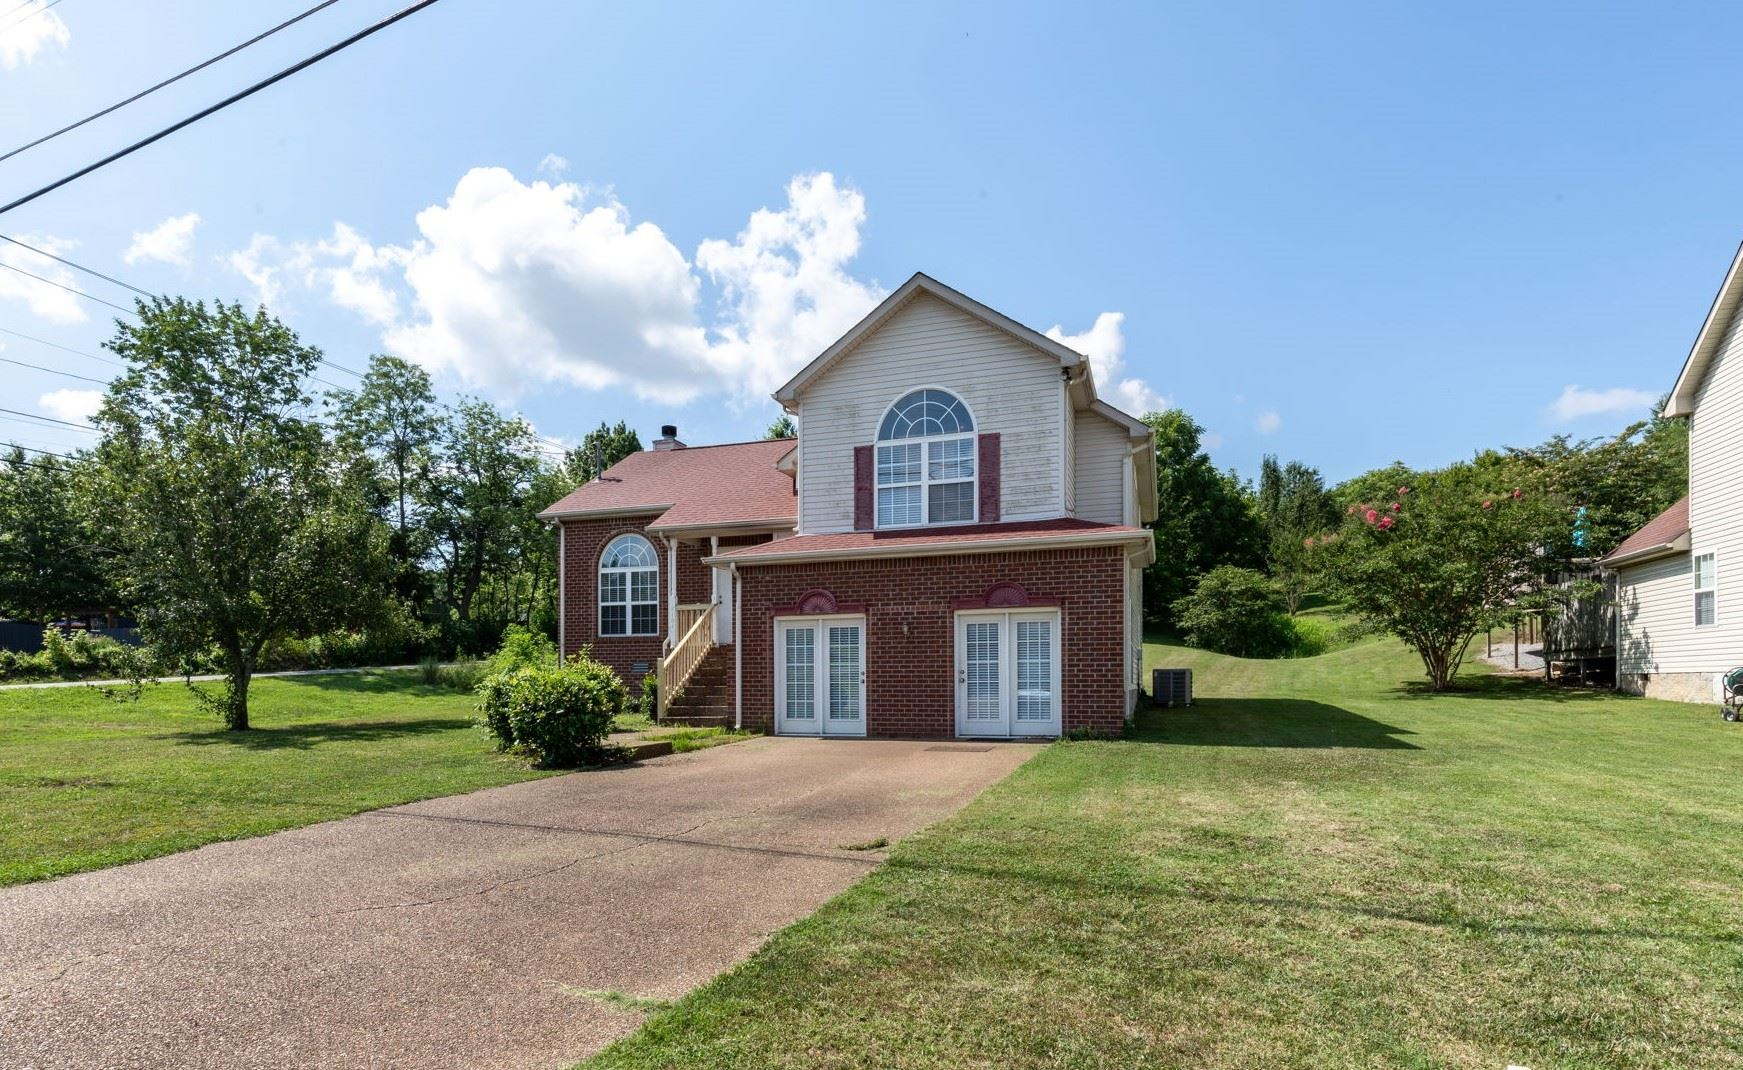 2101 Debbie Ln, La Vergne, TN 37086 - MLS#: 2144623